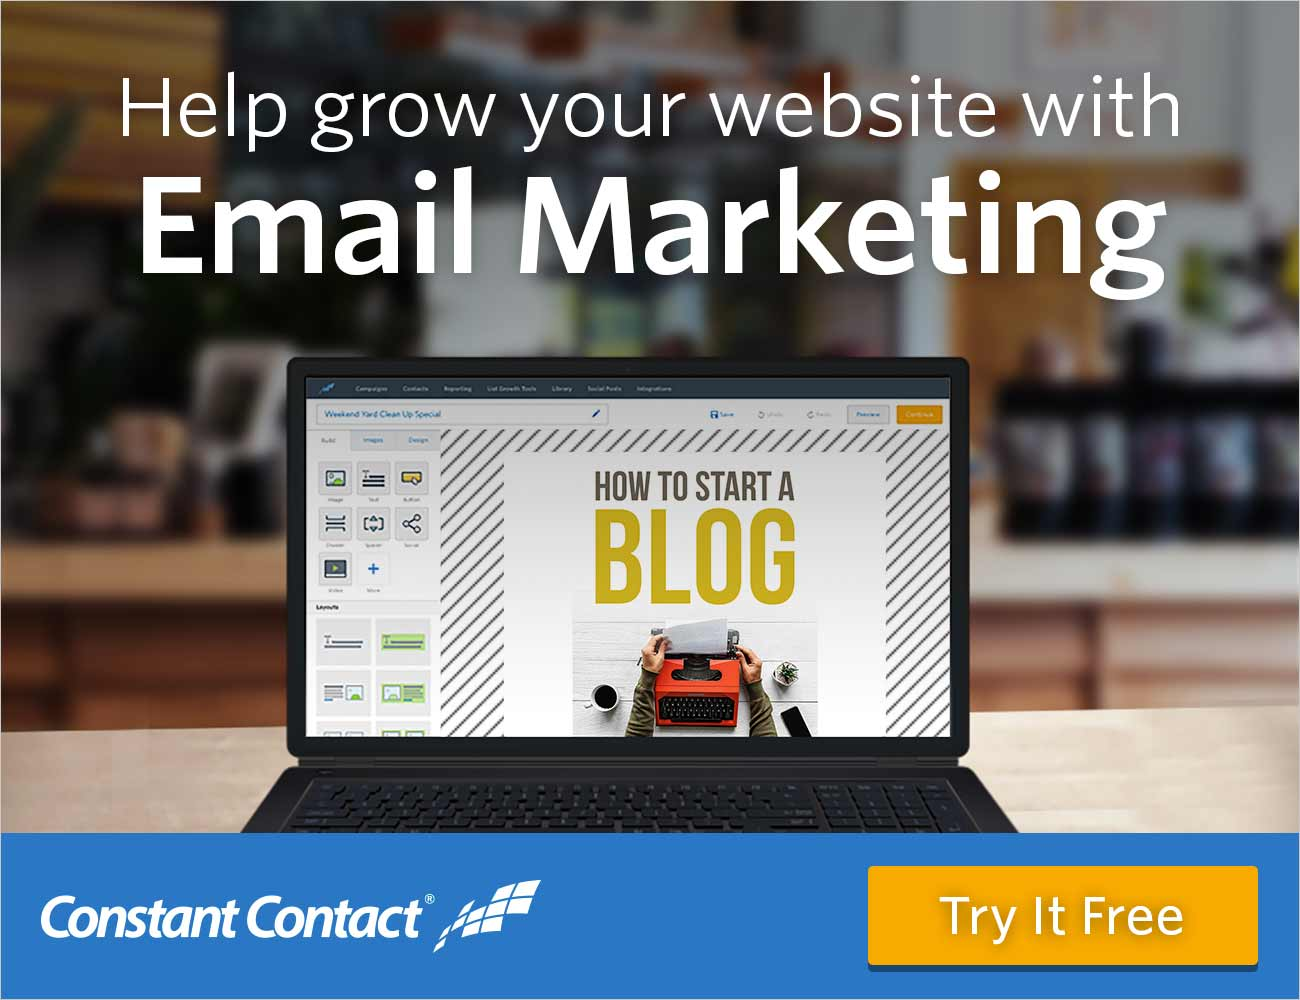 Help grow your website with Constant Contact email marketing